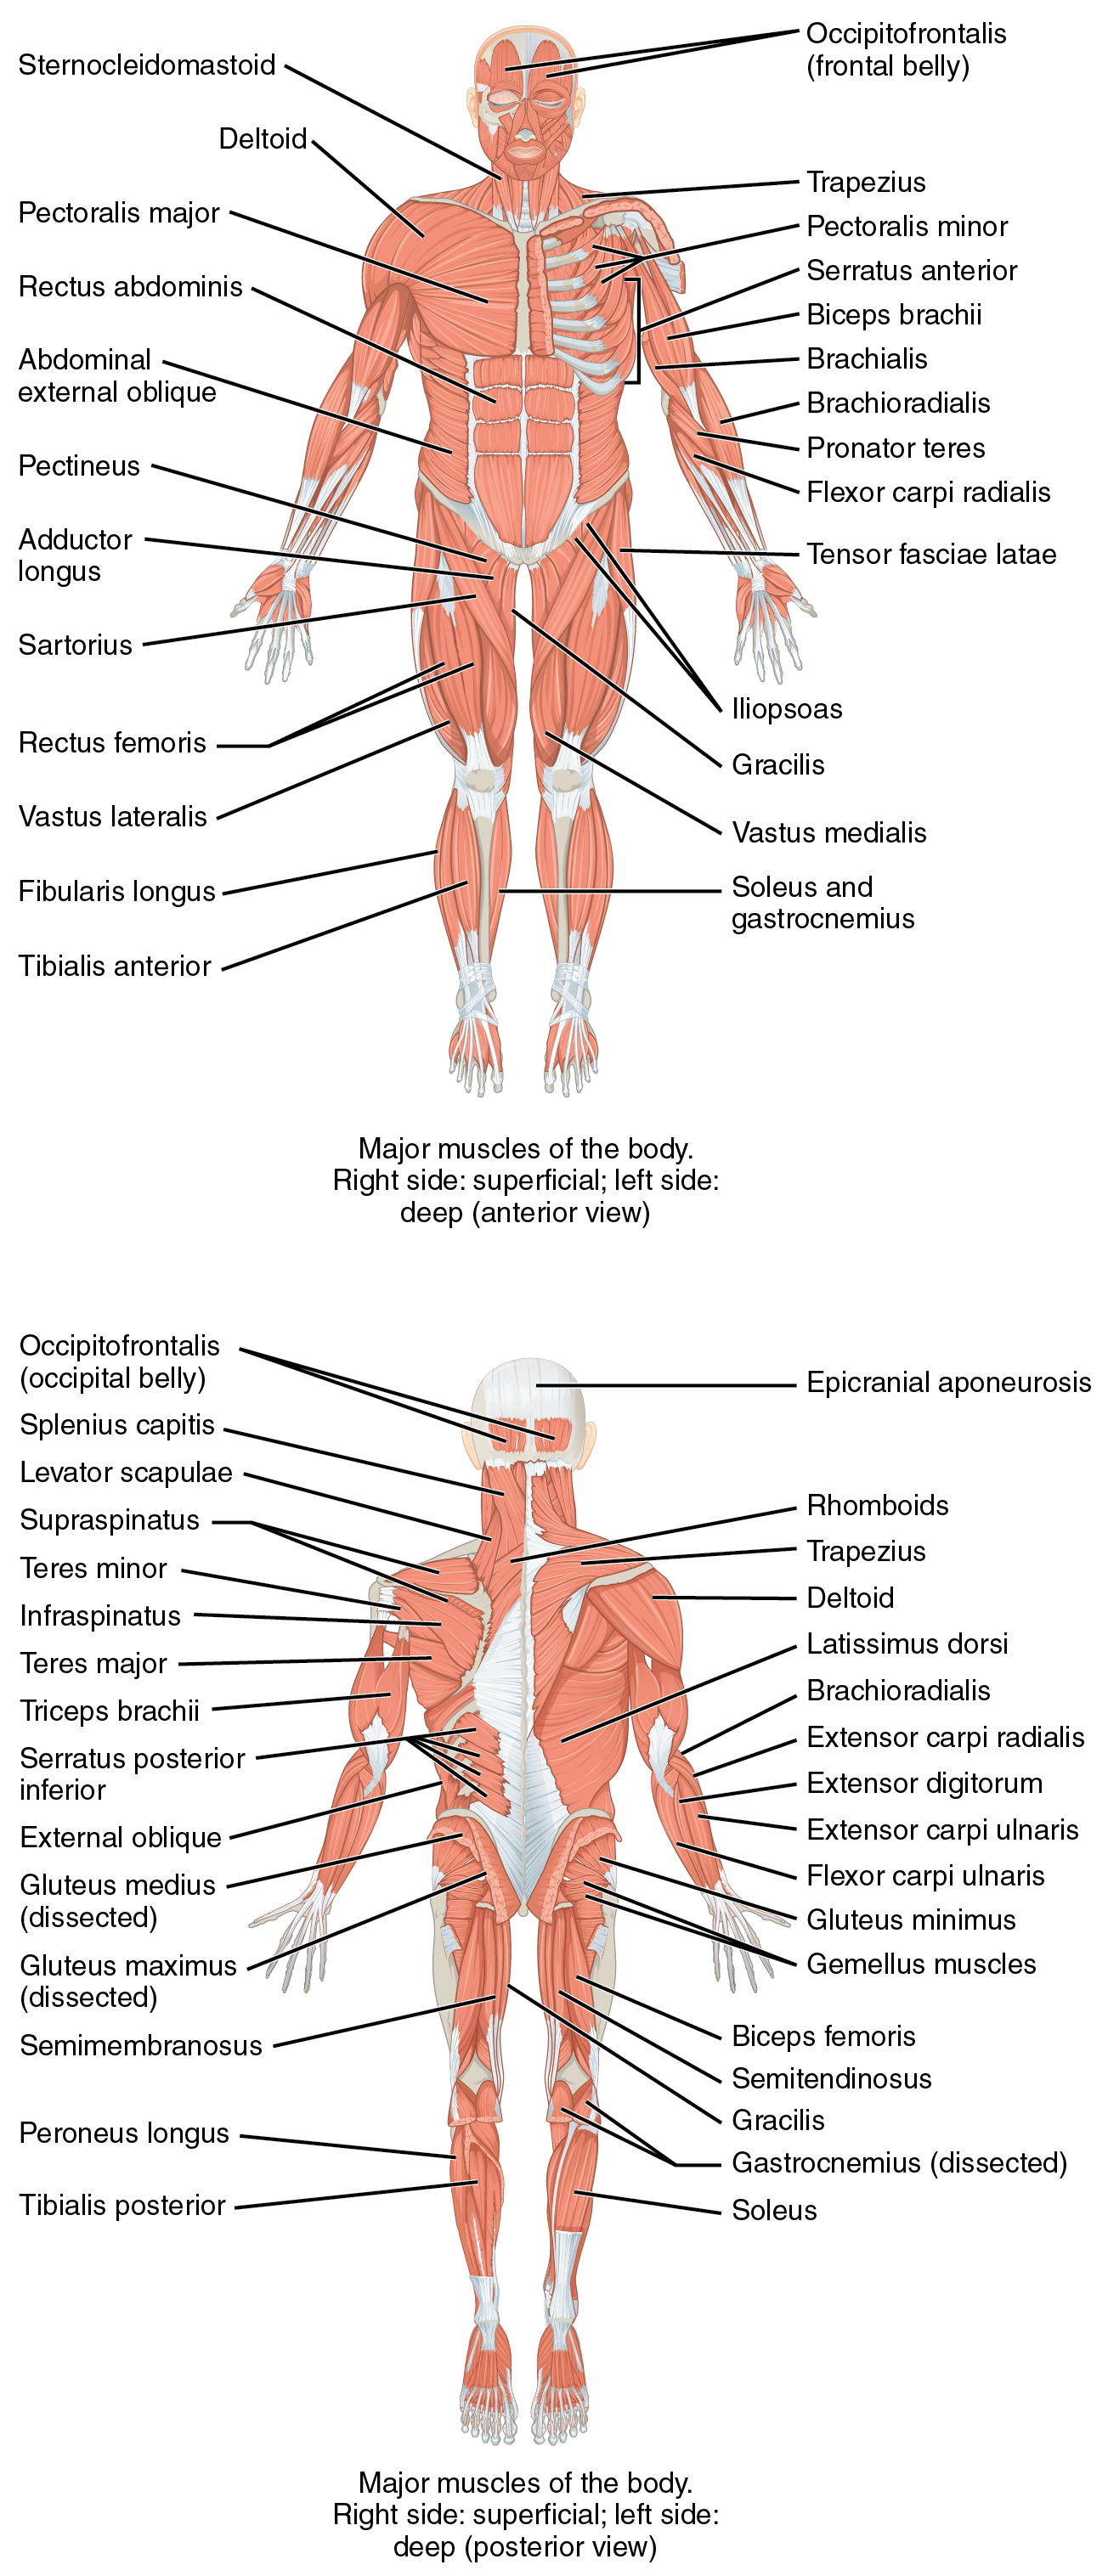 skeleton diagram labeled car alarm wire 11 2 naming skeletal muscles anatomy and physiology the top panel shows anterior view of human body with major